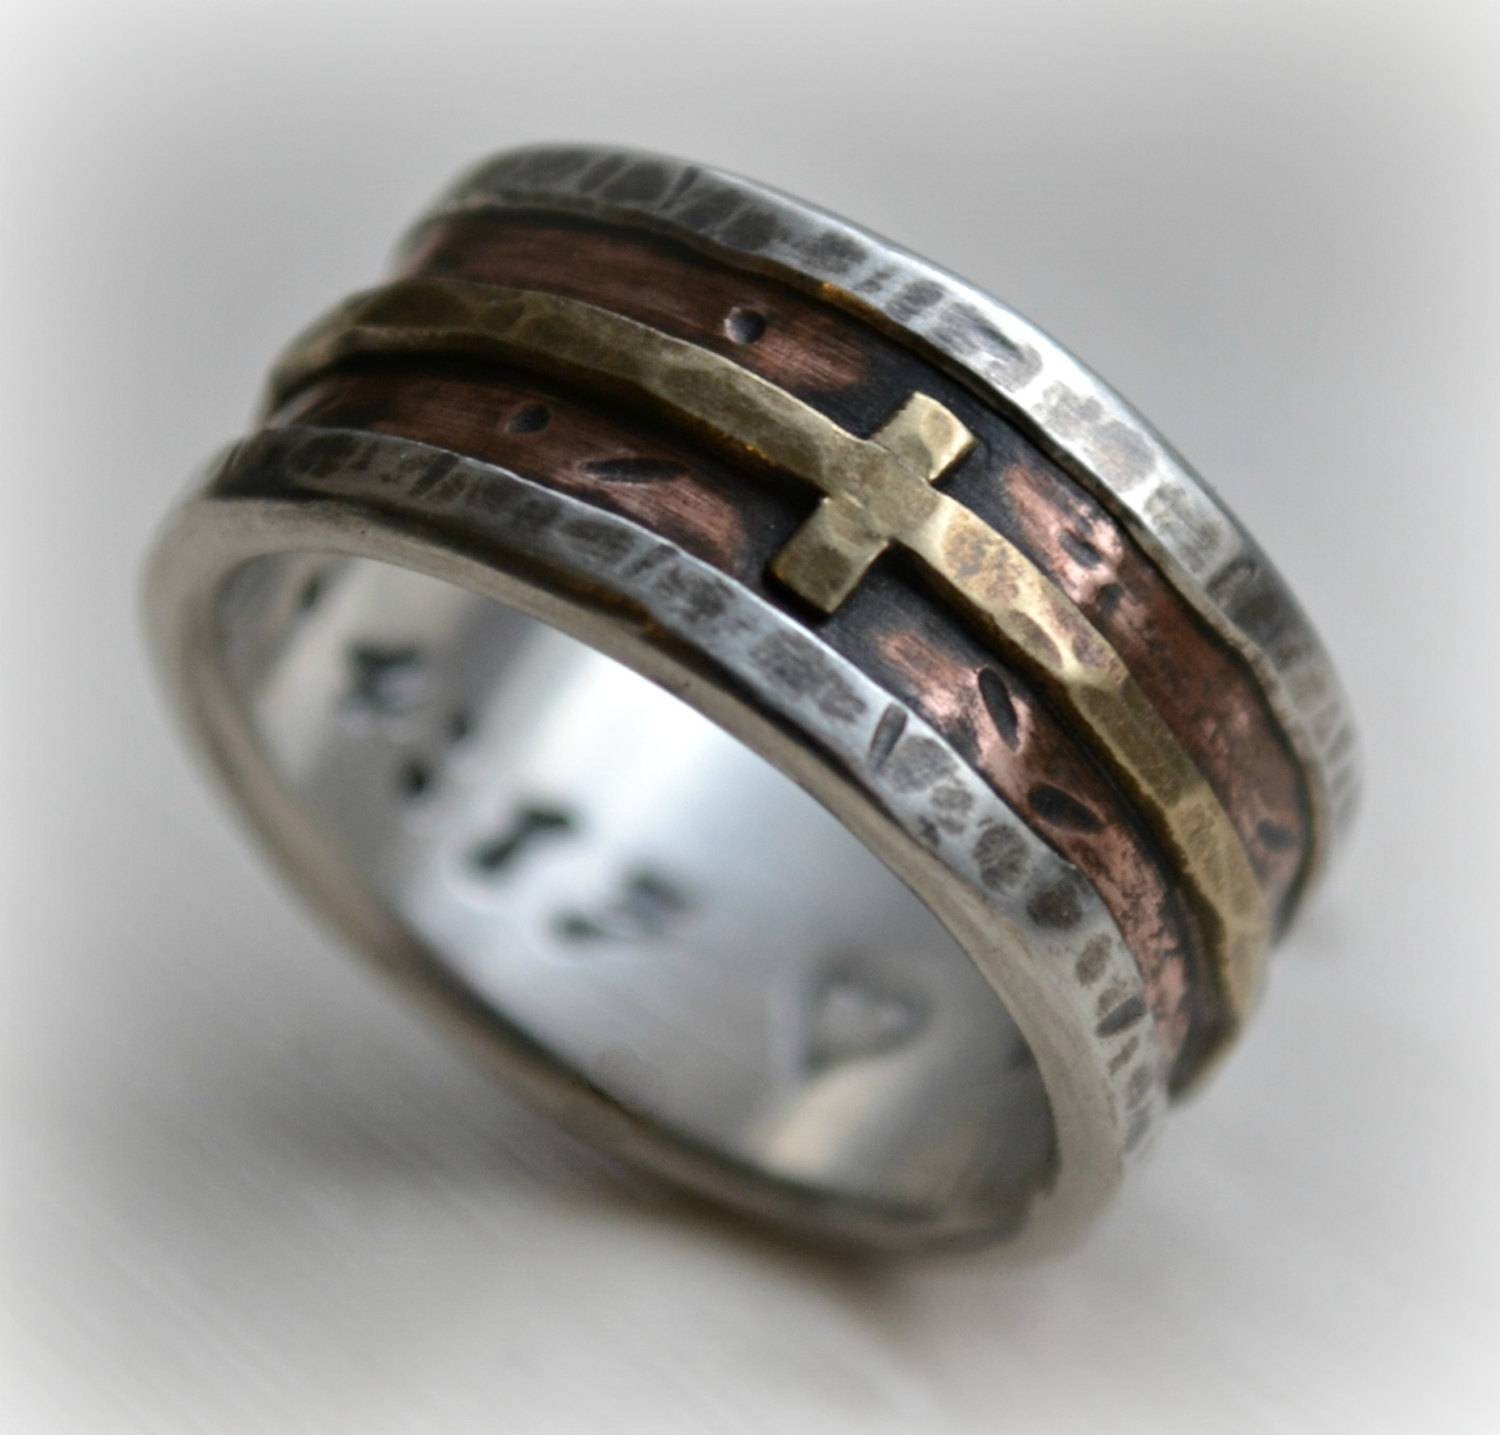 Mens Wedding Band Rustic Fine Silver Copper And Brass Cross Pertaining To Cross Wedding Bands (View 10 of 15)